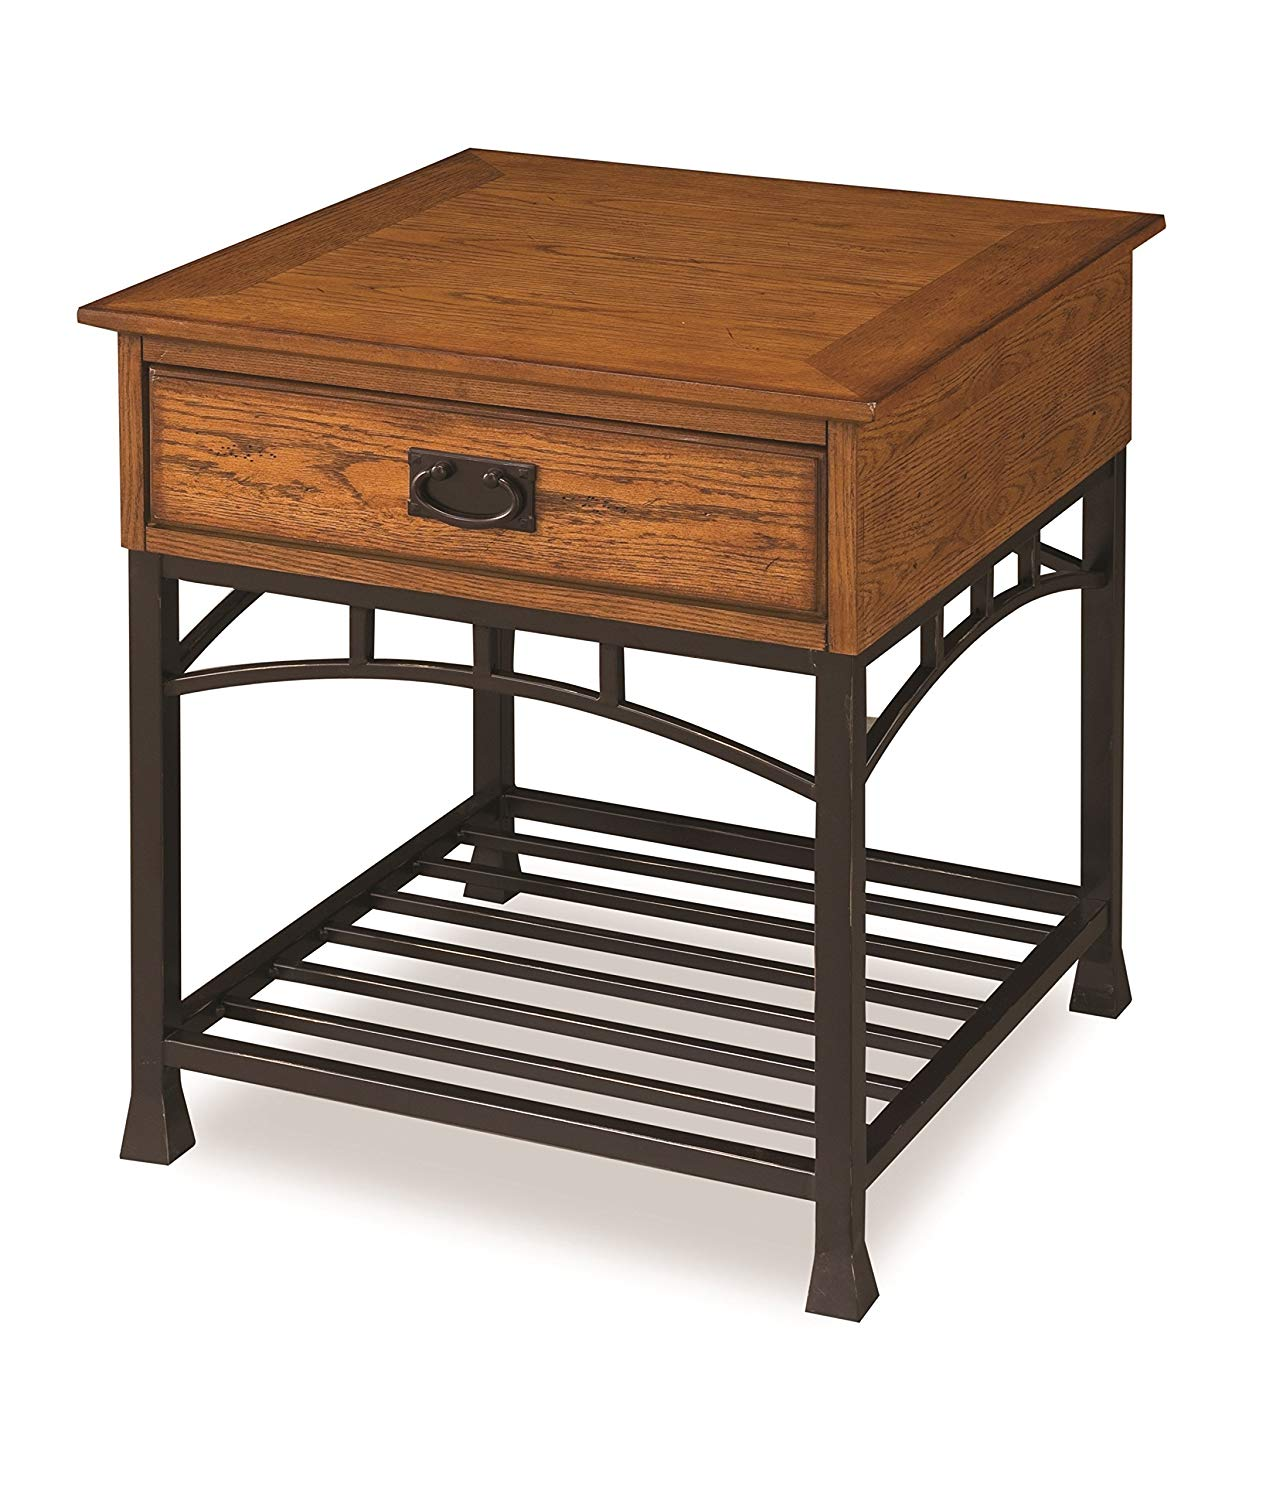 home styles modern craftsman end table distressed oak tables finish kitchen large black coffee ethan allen bar leick stools desk made from pipe side with magazine rack stanley